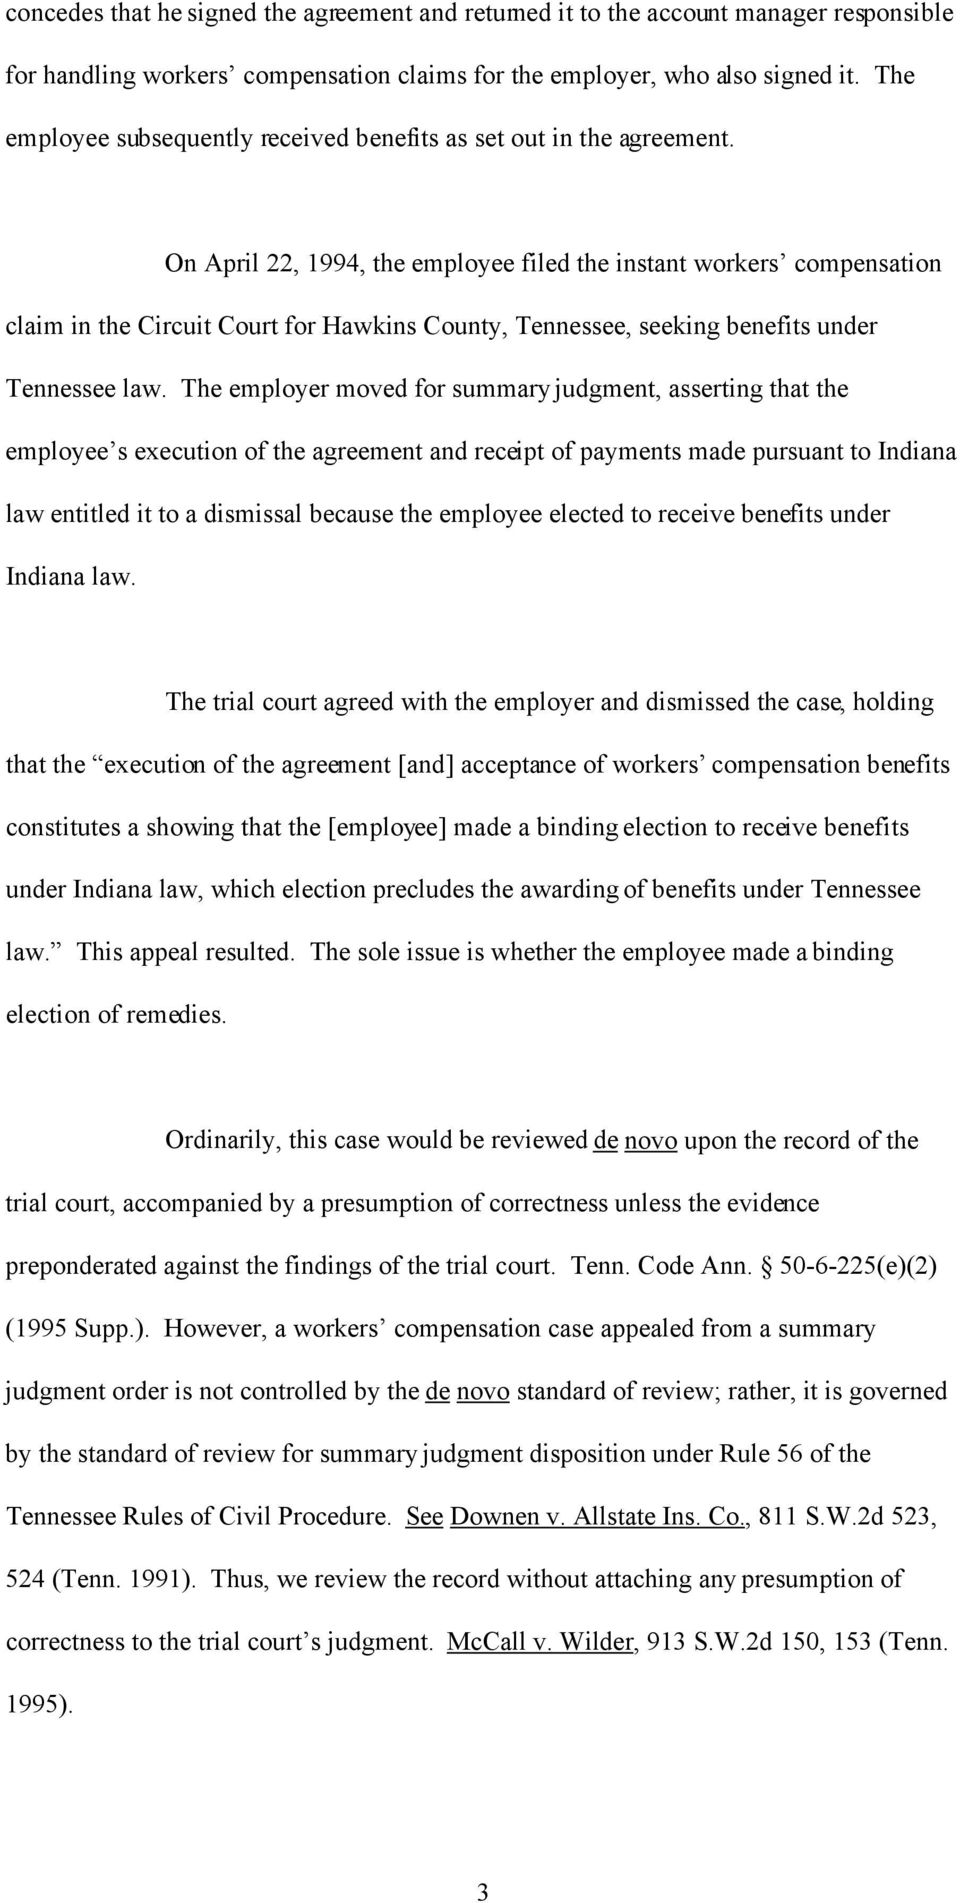 On April 22, 1994, the employee filed the instant workers compensation claim in the Circuit Court for Hawkins County, Tennessee, seeking benefits under Tennessee law.